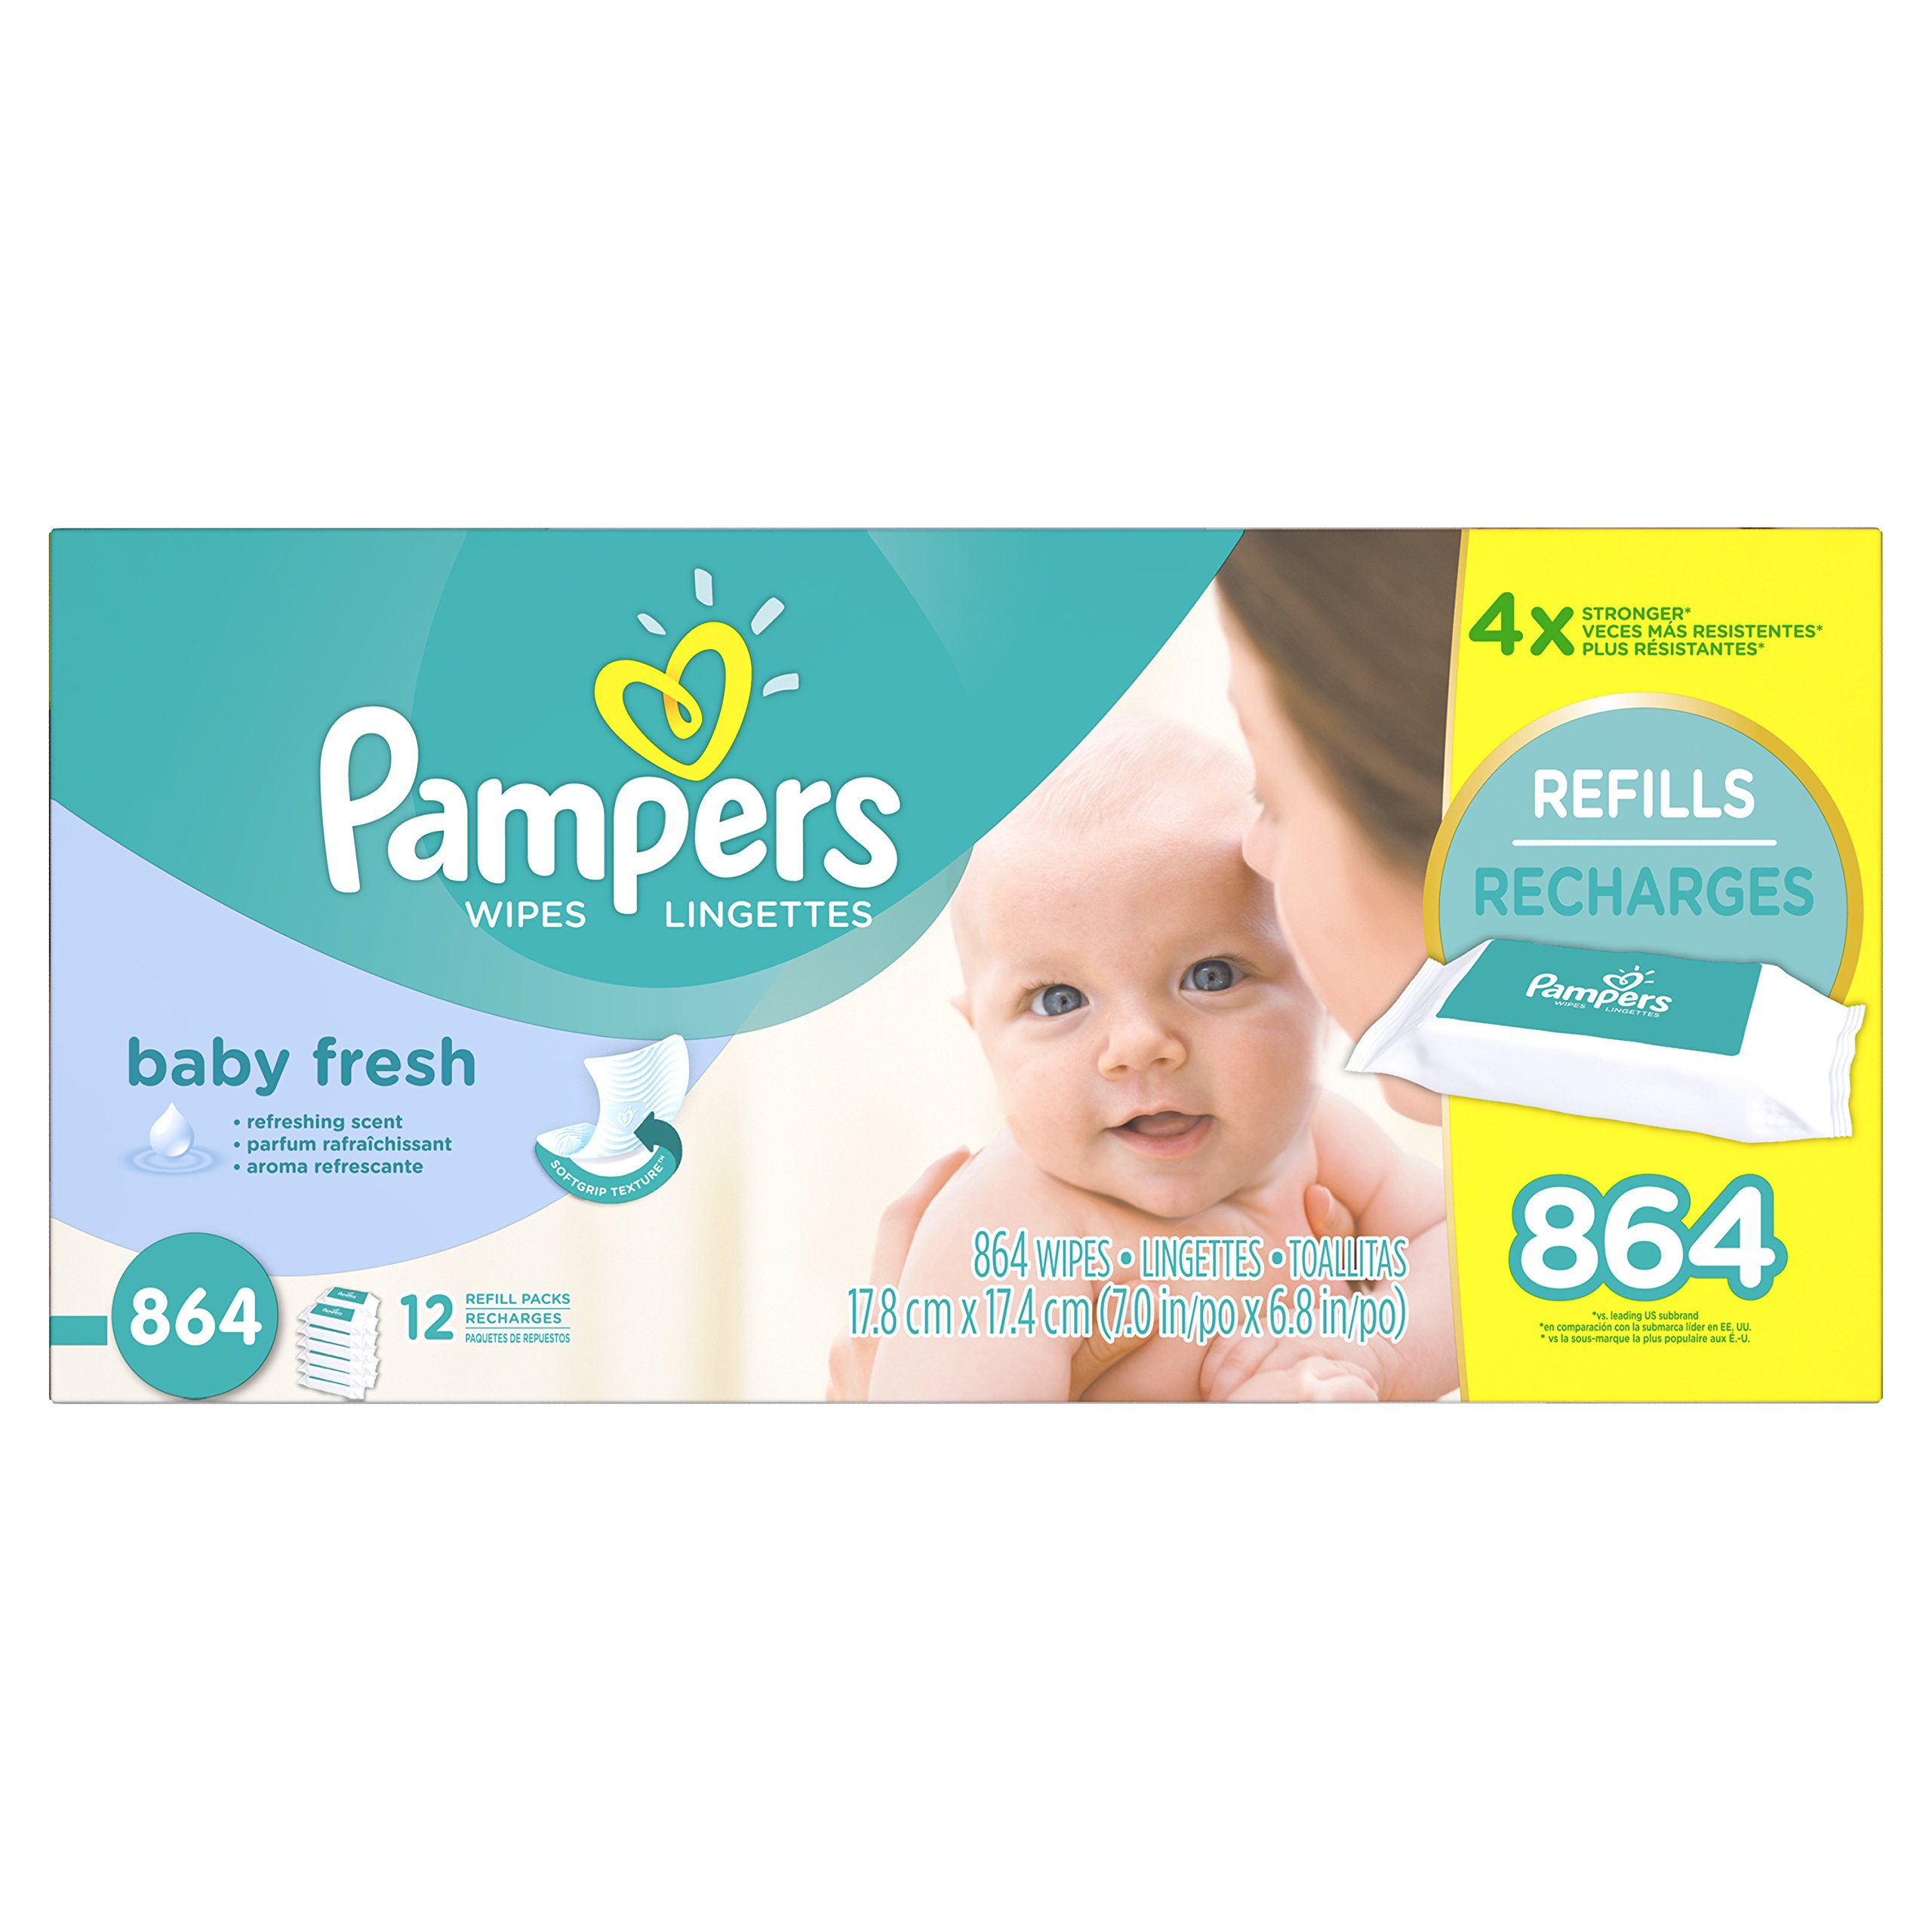 Pampers Baby Fresh Water Baby Wipes 12X Refill Packs, 864 Count